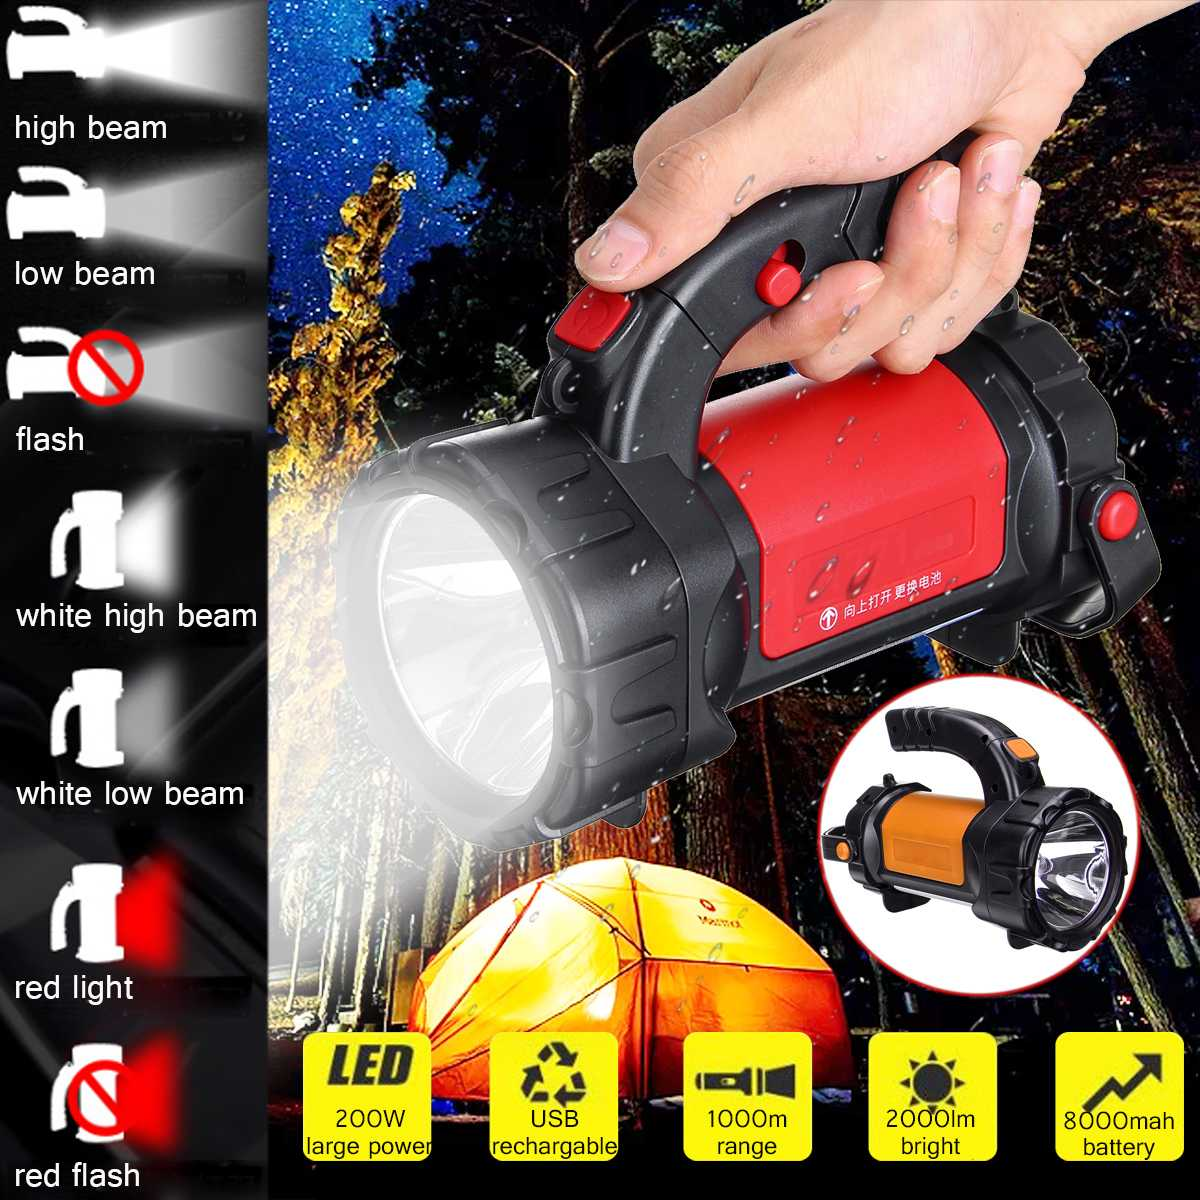 200w LED Lantern Searchlight 8000mAh Battery LED Flashlight Torch Light Lamp Powerful FlashLights For Camping Hunting Lantern